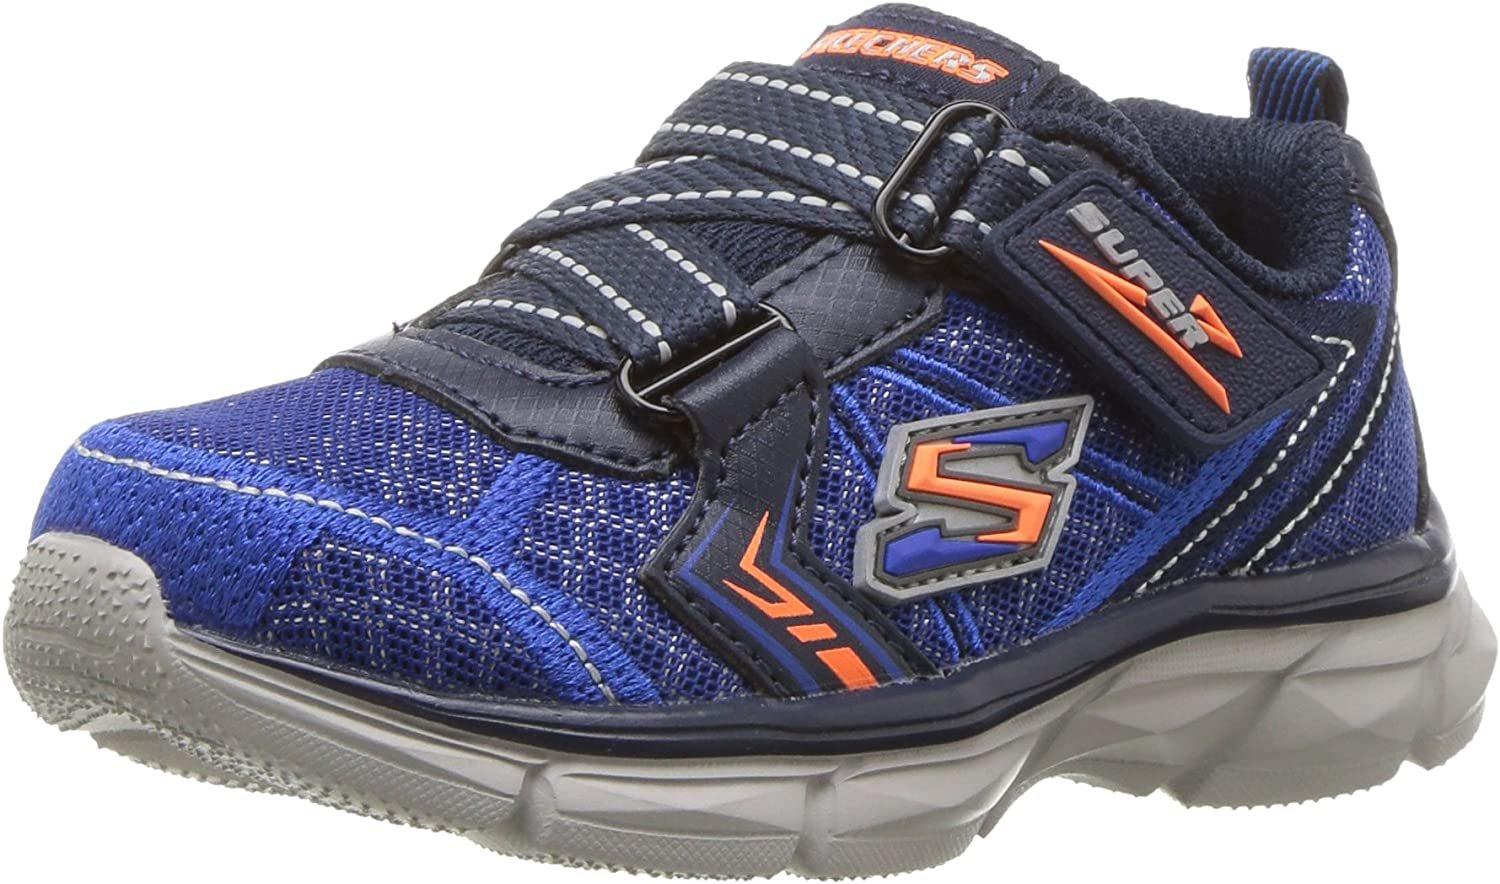 Skechers Kids Kids' Kids' Kids' Advance-Power Tread Turnschuhe B01MQKMDZ4  Haltbarkeit 3f9c9d